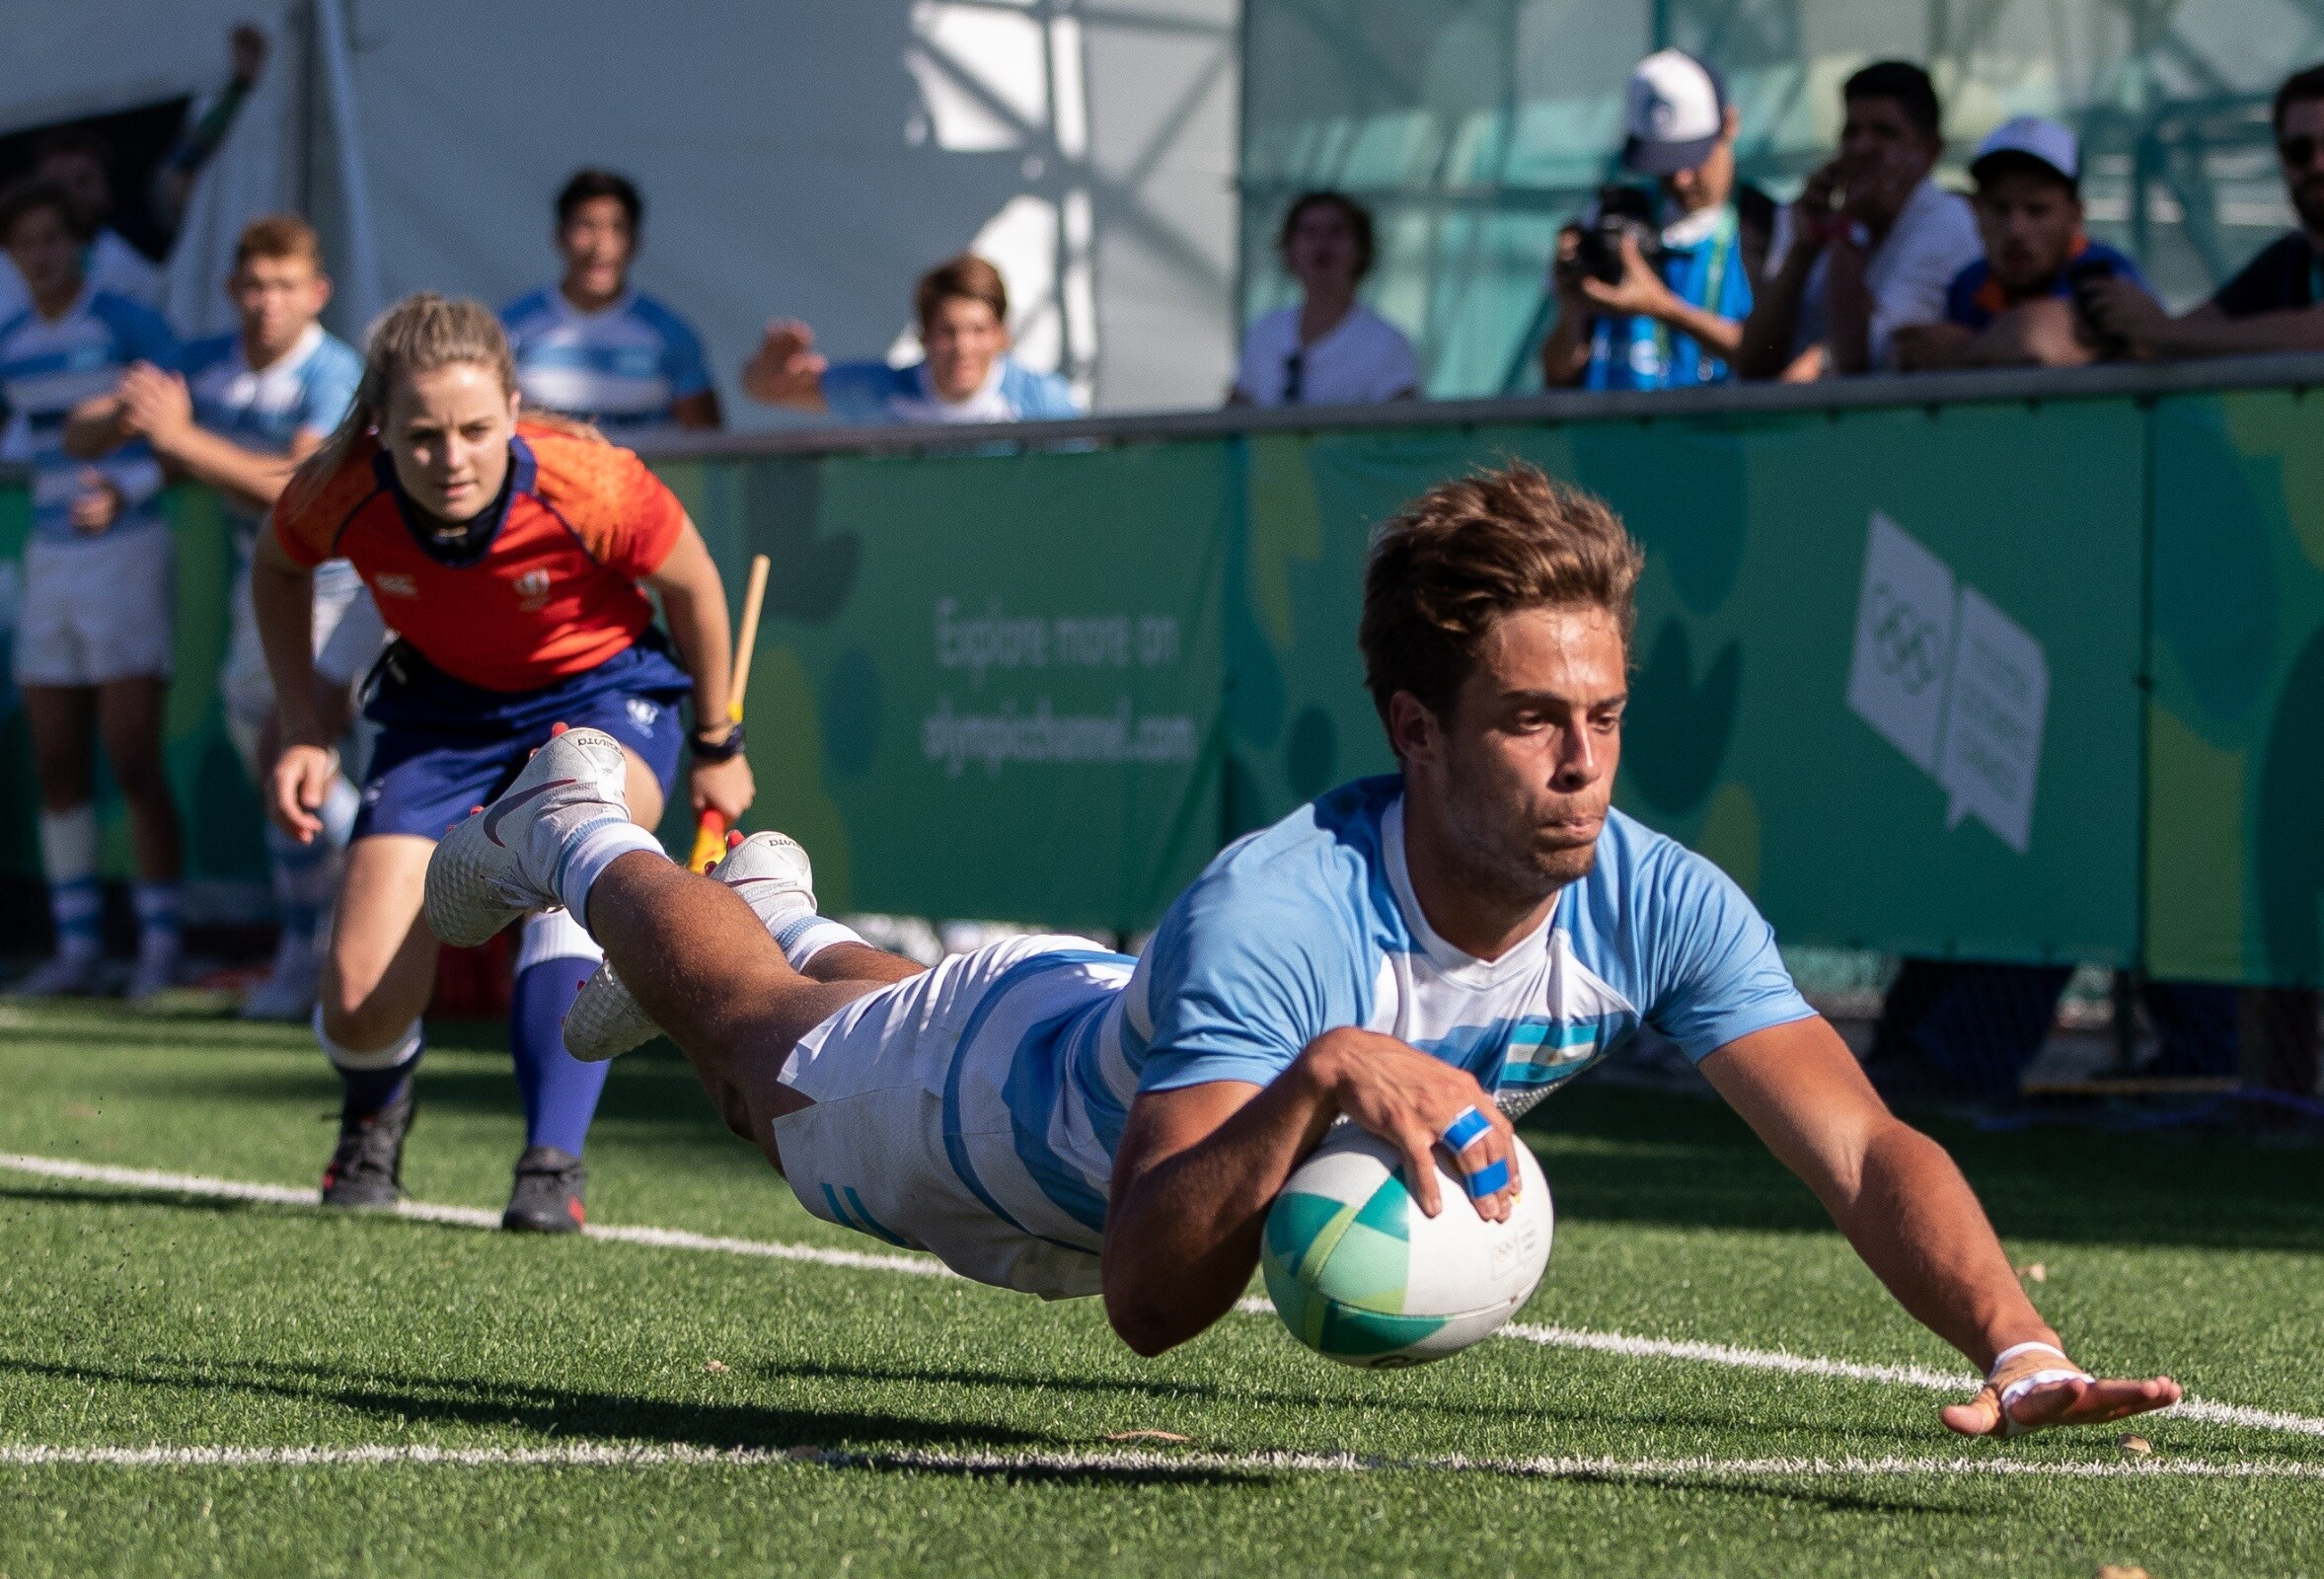 Buenos Aires 2018 - Rugby Sevens - Men's Tournament